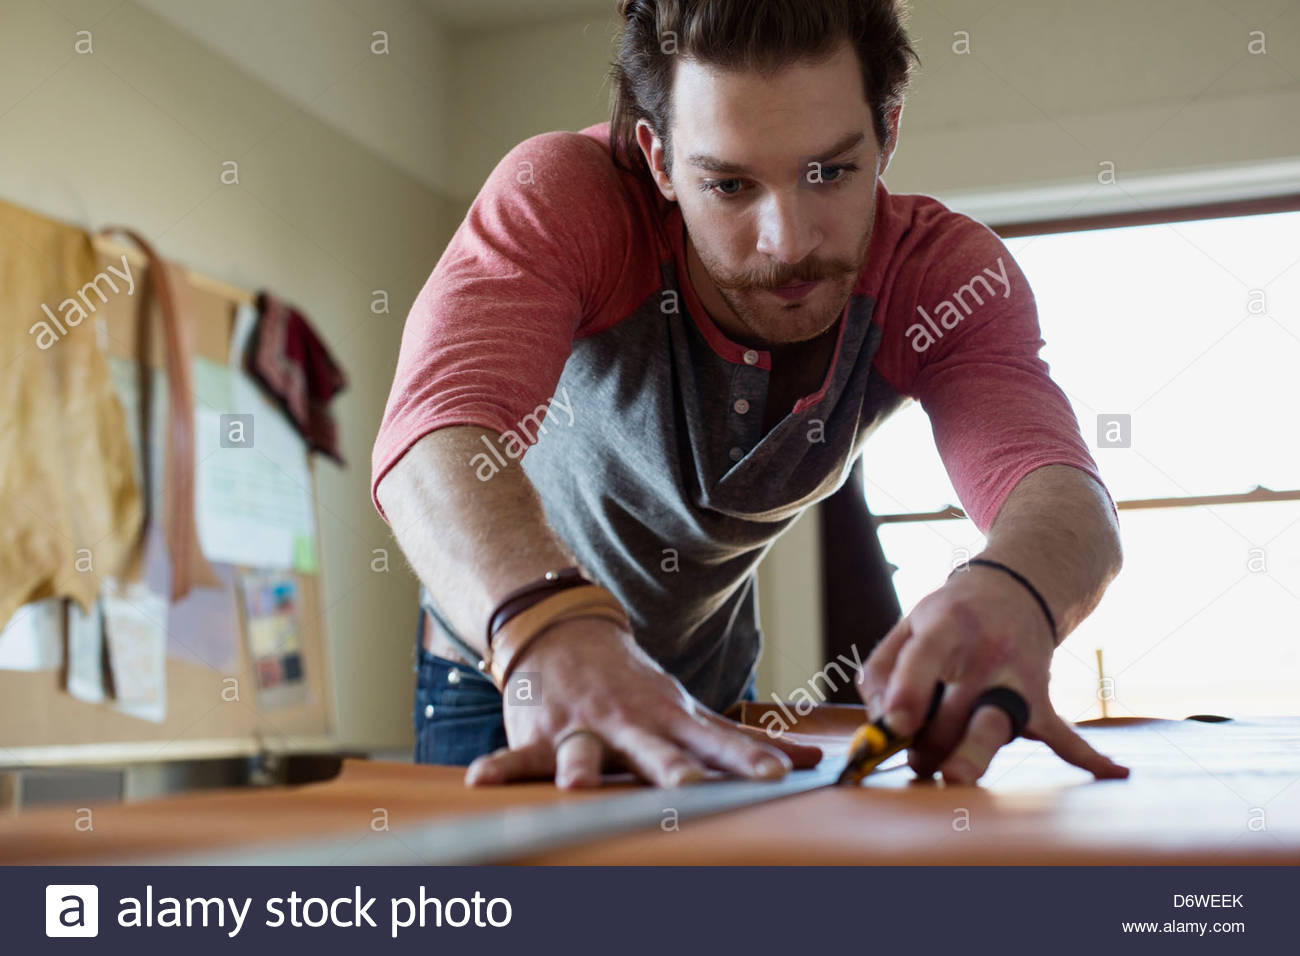 Young man measuring and cutting leather in workshop Stock Photo